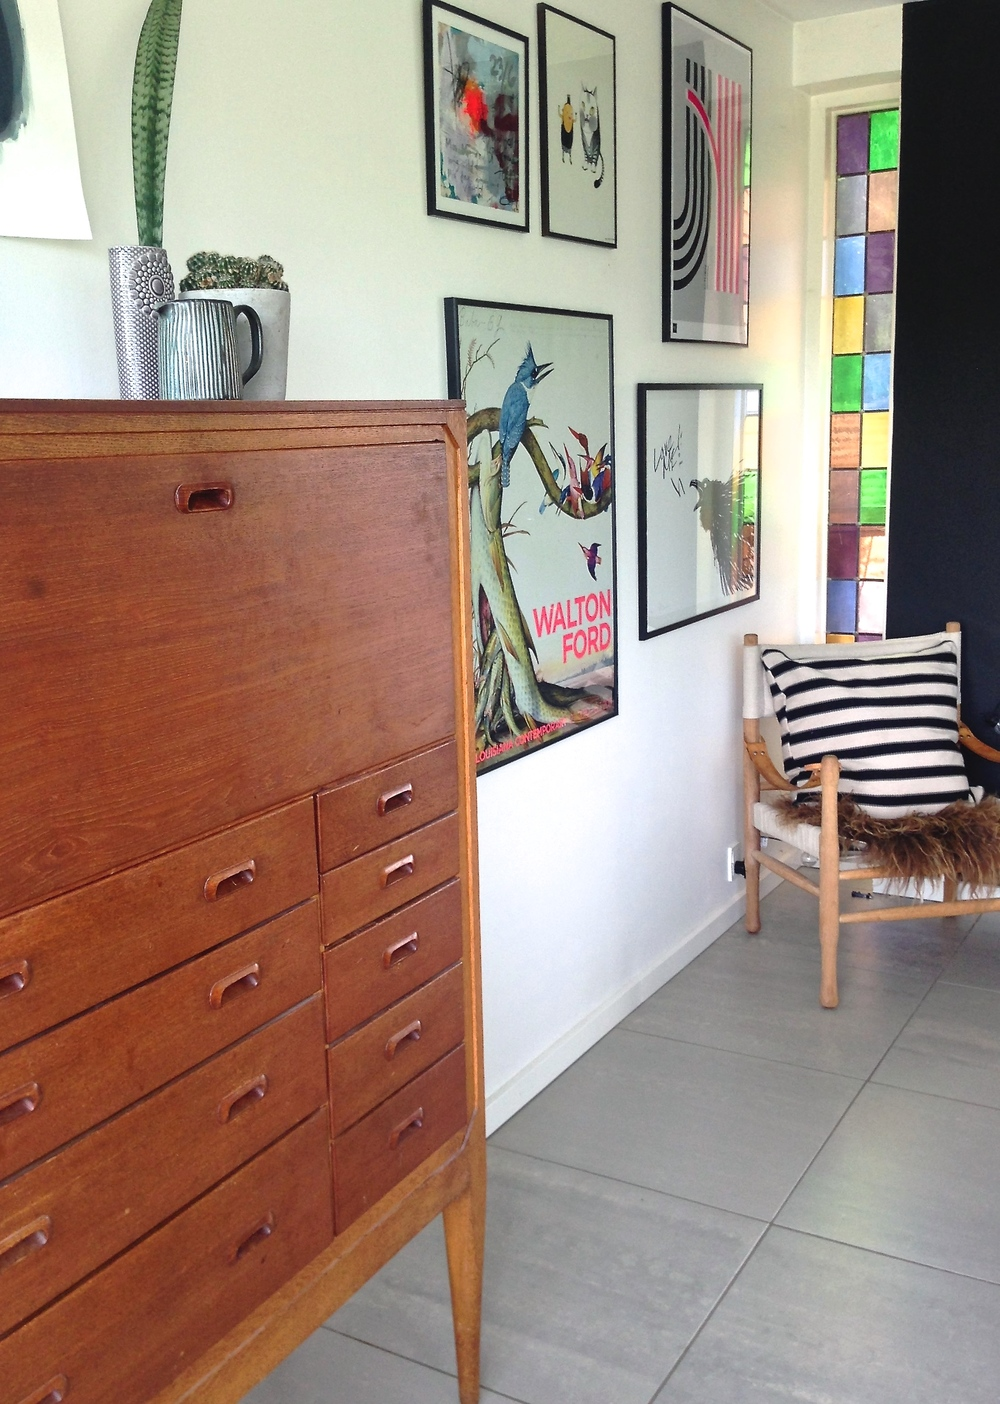 """The first furniture my grandmother bought (before she met my granddad) were designs from some of the greatest designers/architects in Denmark from the 1950´s. I have inherited some chairs and a cabinet from her. I love furniture (especially teak) from the 1950´s but also German Bauhaus interior."" The eclectic collection of artwork throughout the home is amazing. I will never tire of a good gallery wall, we have several in our own house. The original stained glass is the perfect addition to this corner. Those colours make me smile."